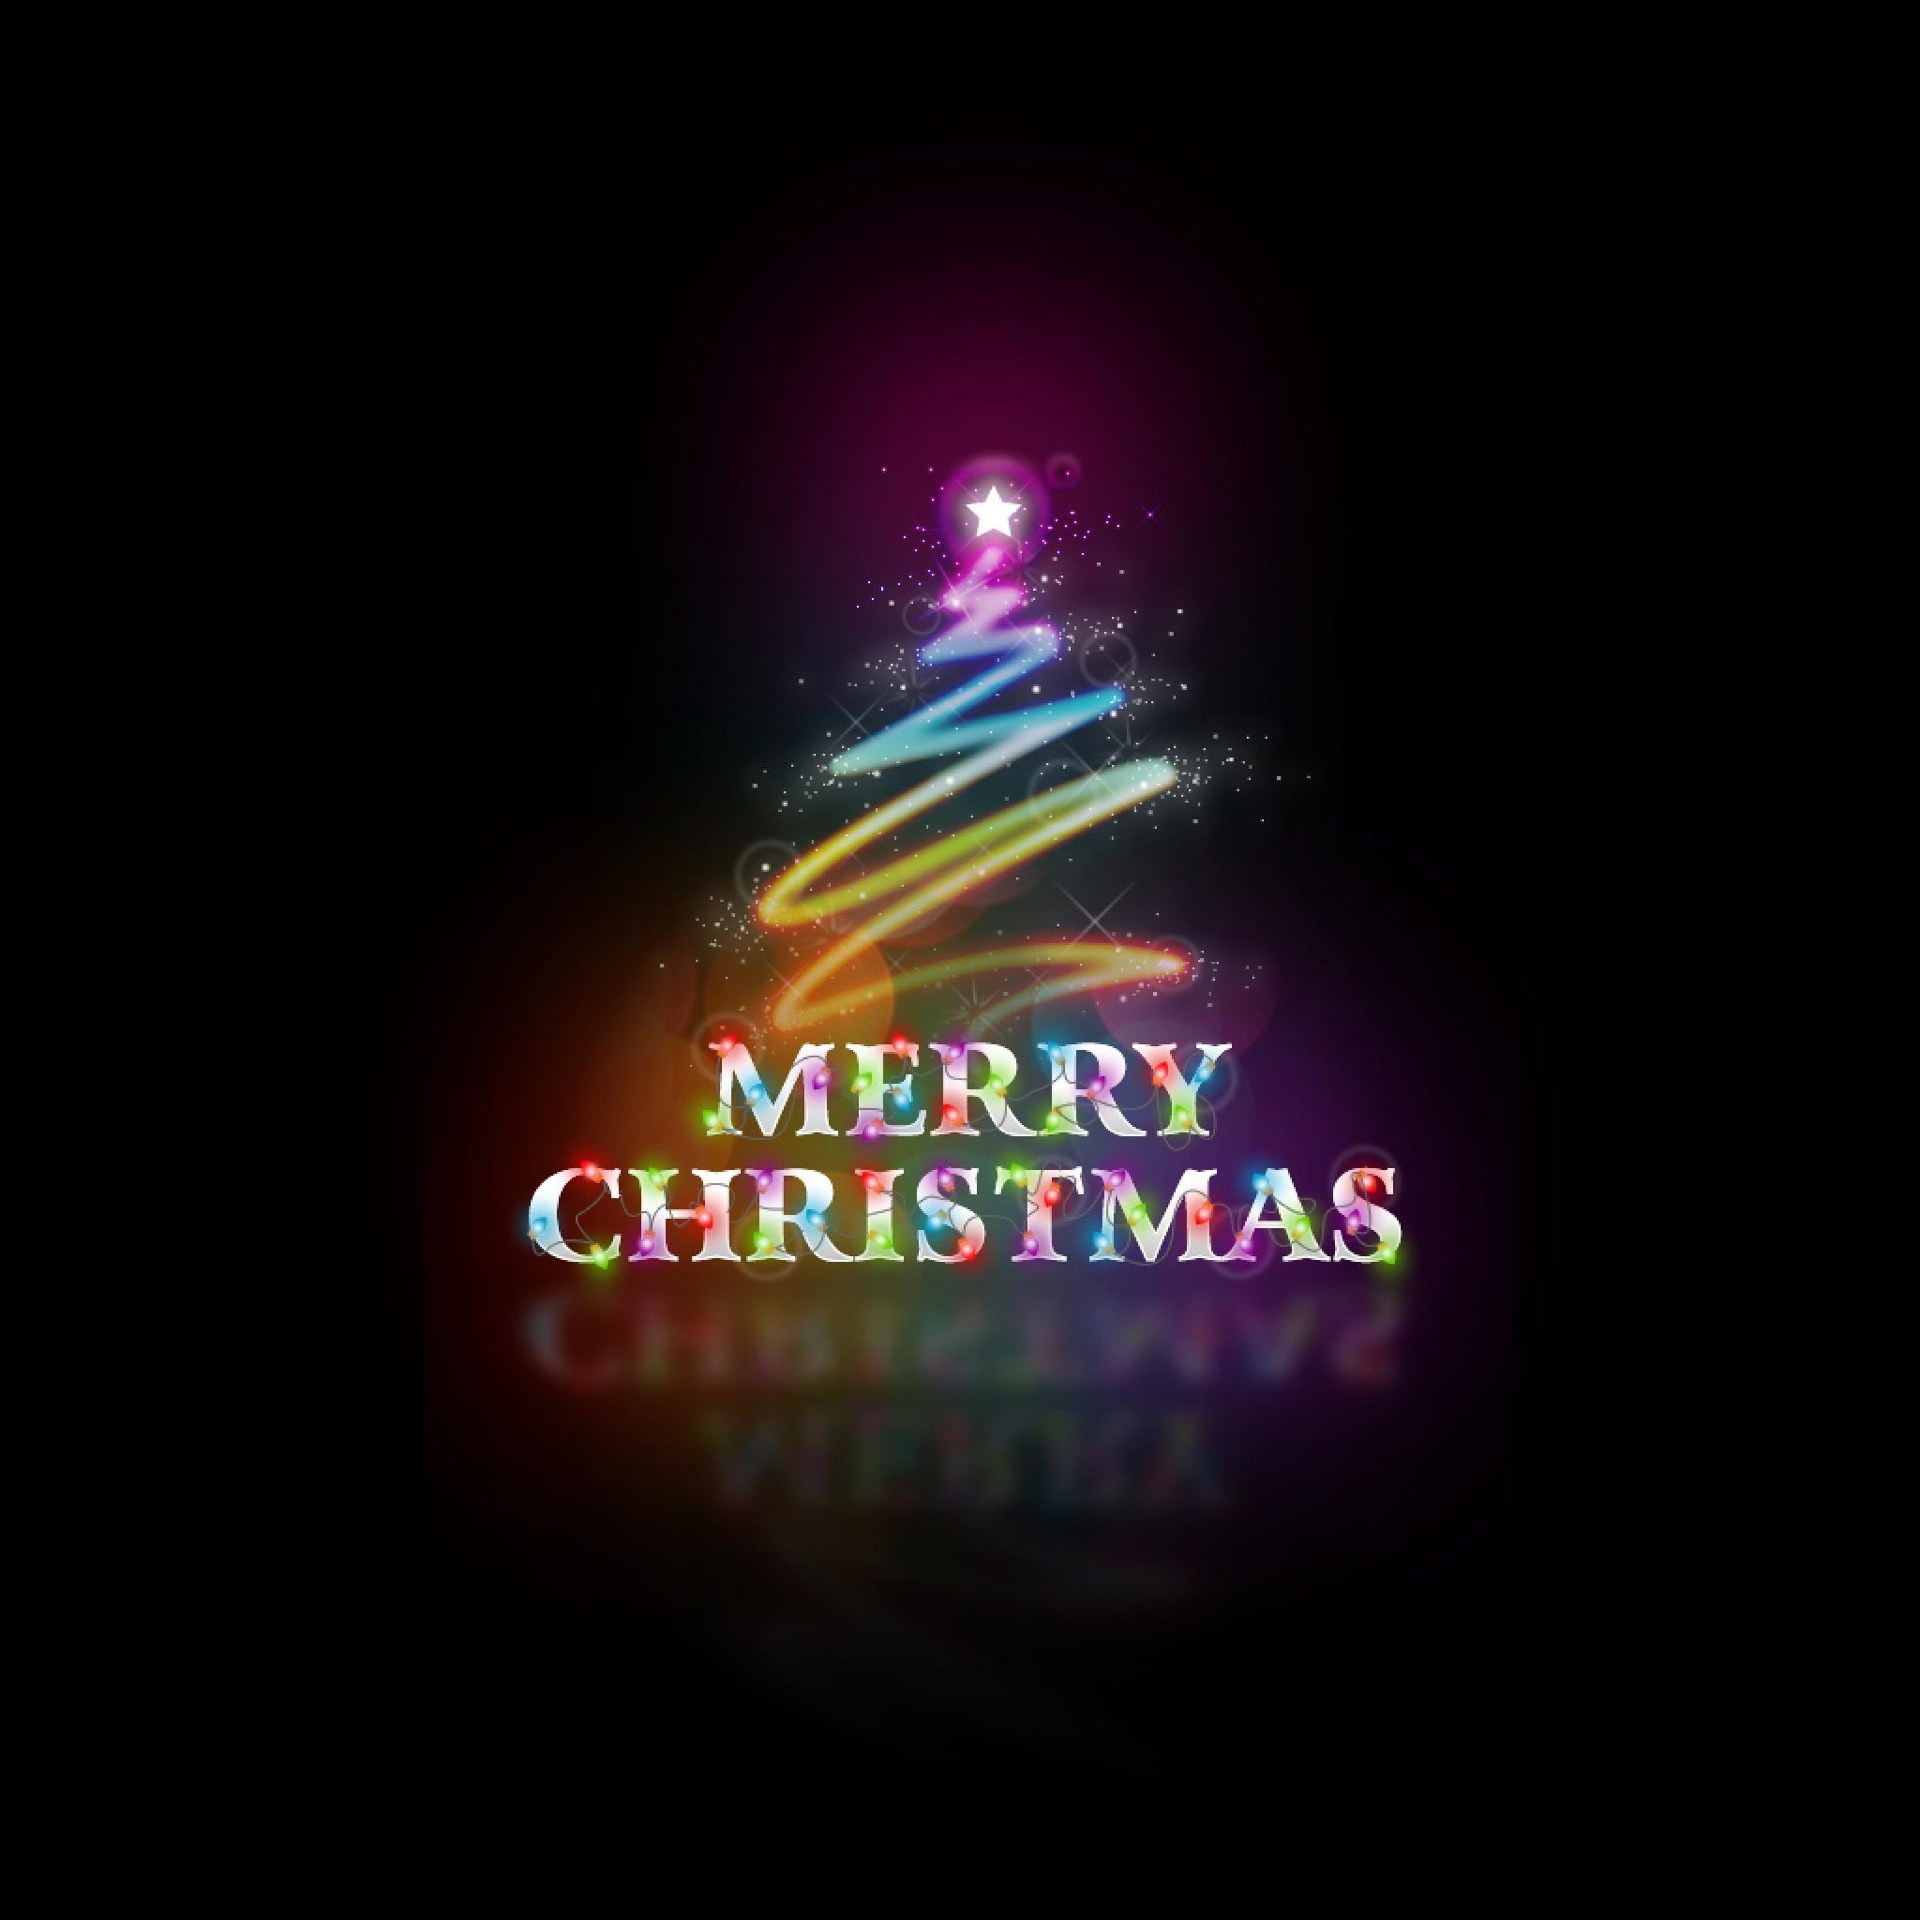 Christmas text wallpaper smartphone android smart phone wallpaper voltagebd Image collections